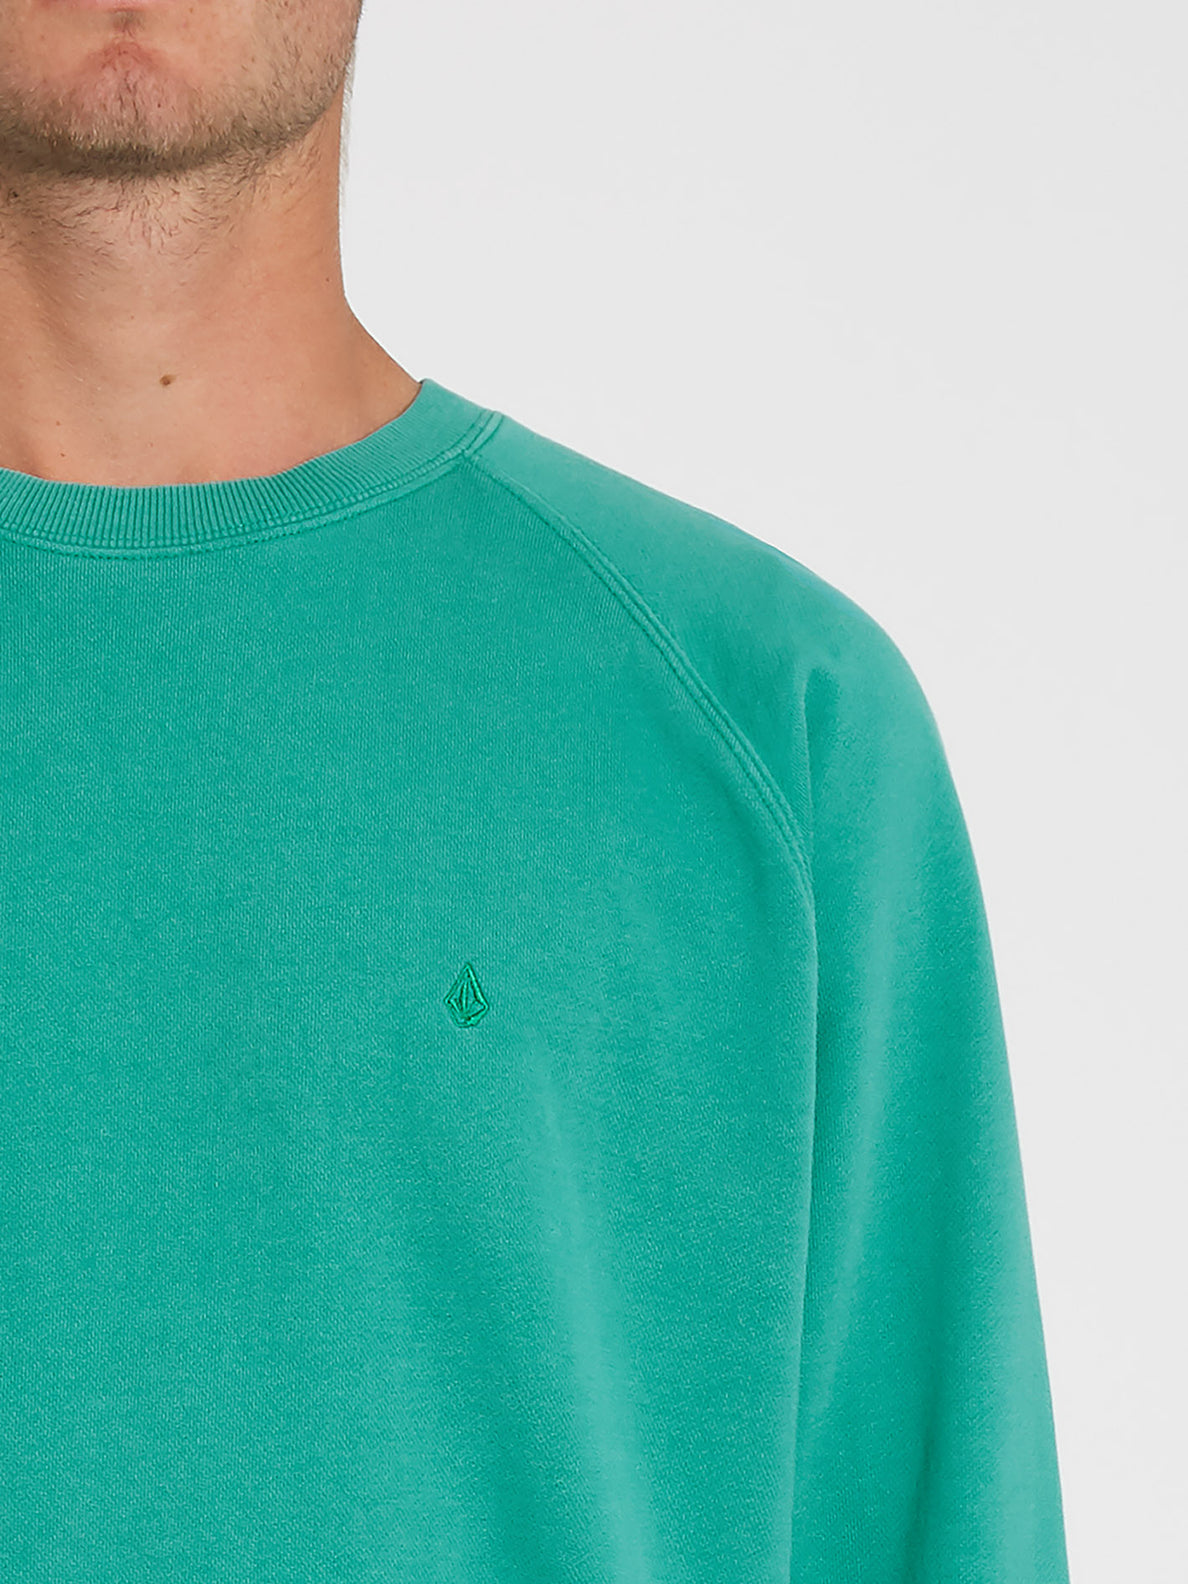 Freeleven Crew Fleece Synergy Green (A4612101_SYG) [1]